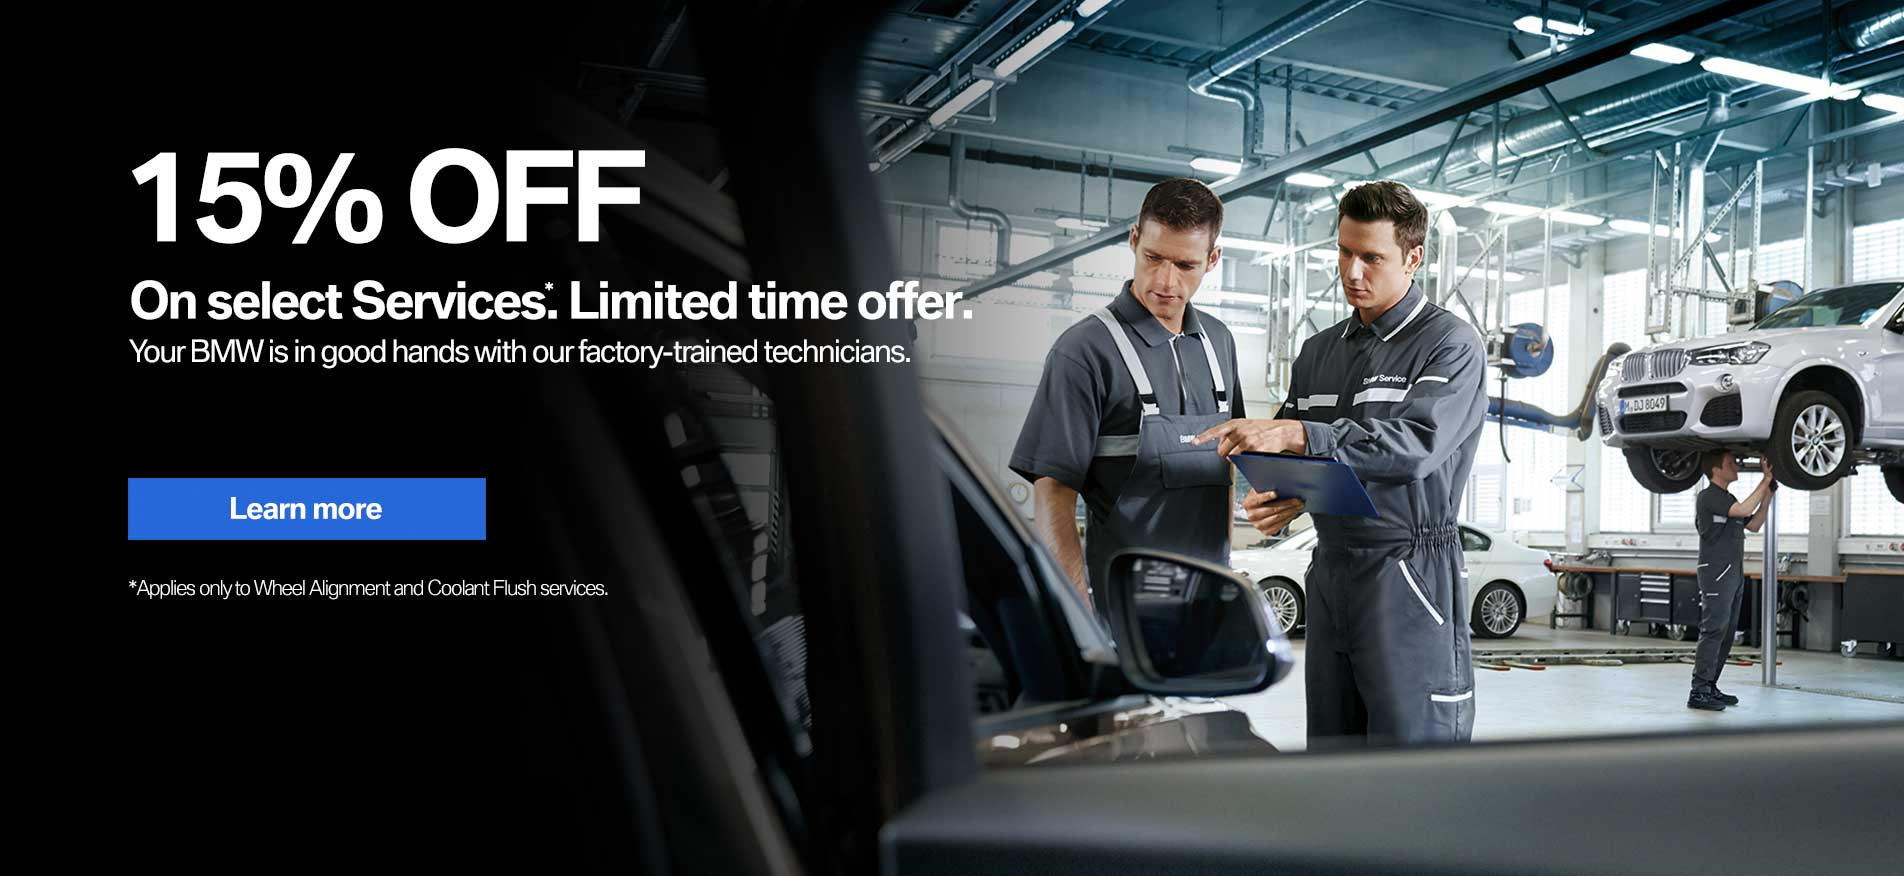 Auto West BMW Service Promotion